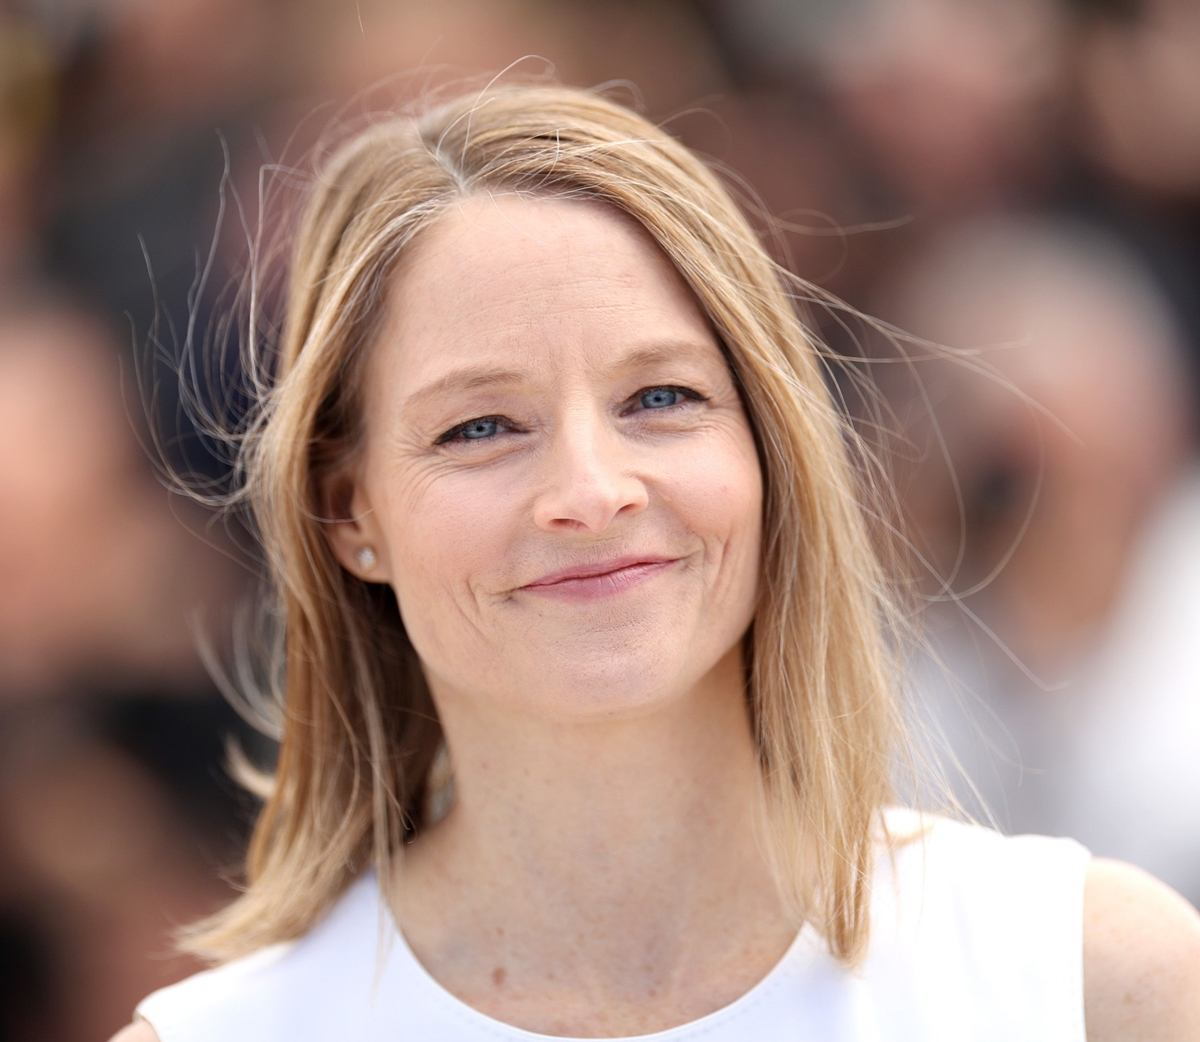 7 22 Fascinating Facts About Your Favourite Hollywood Stars